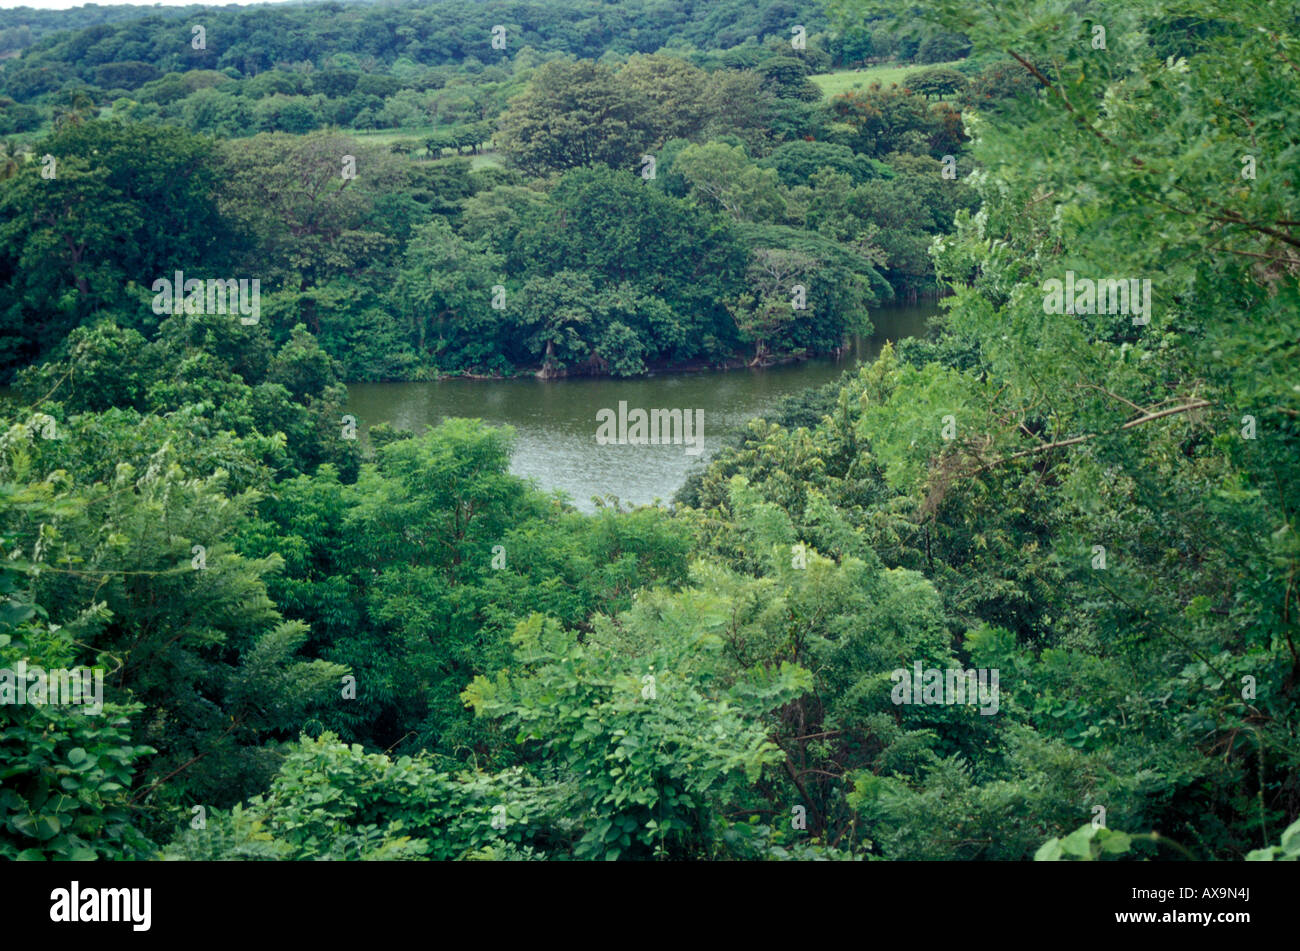 reserva-charco-verde-a-private-nature-re